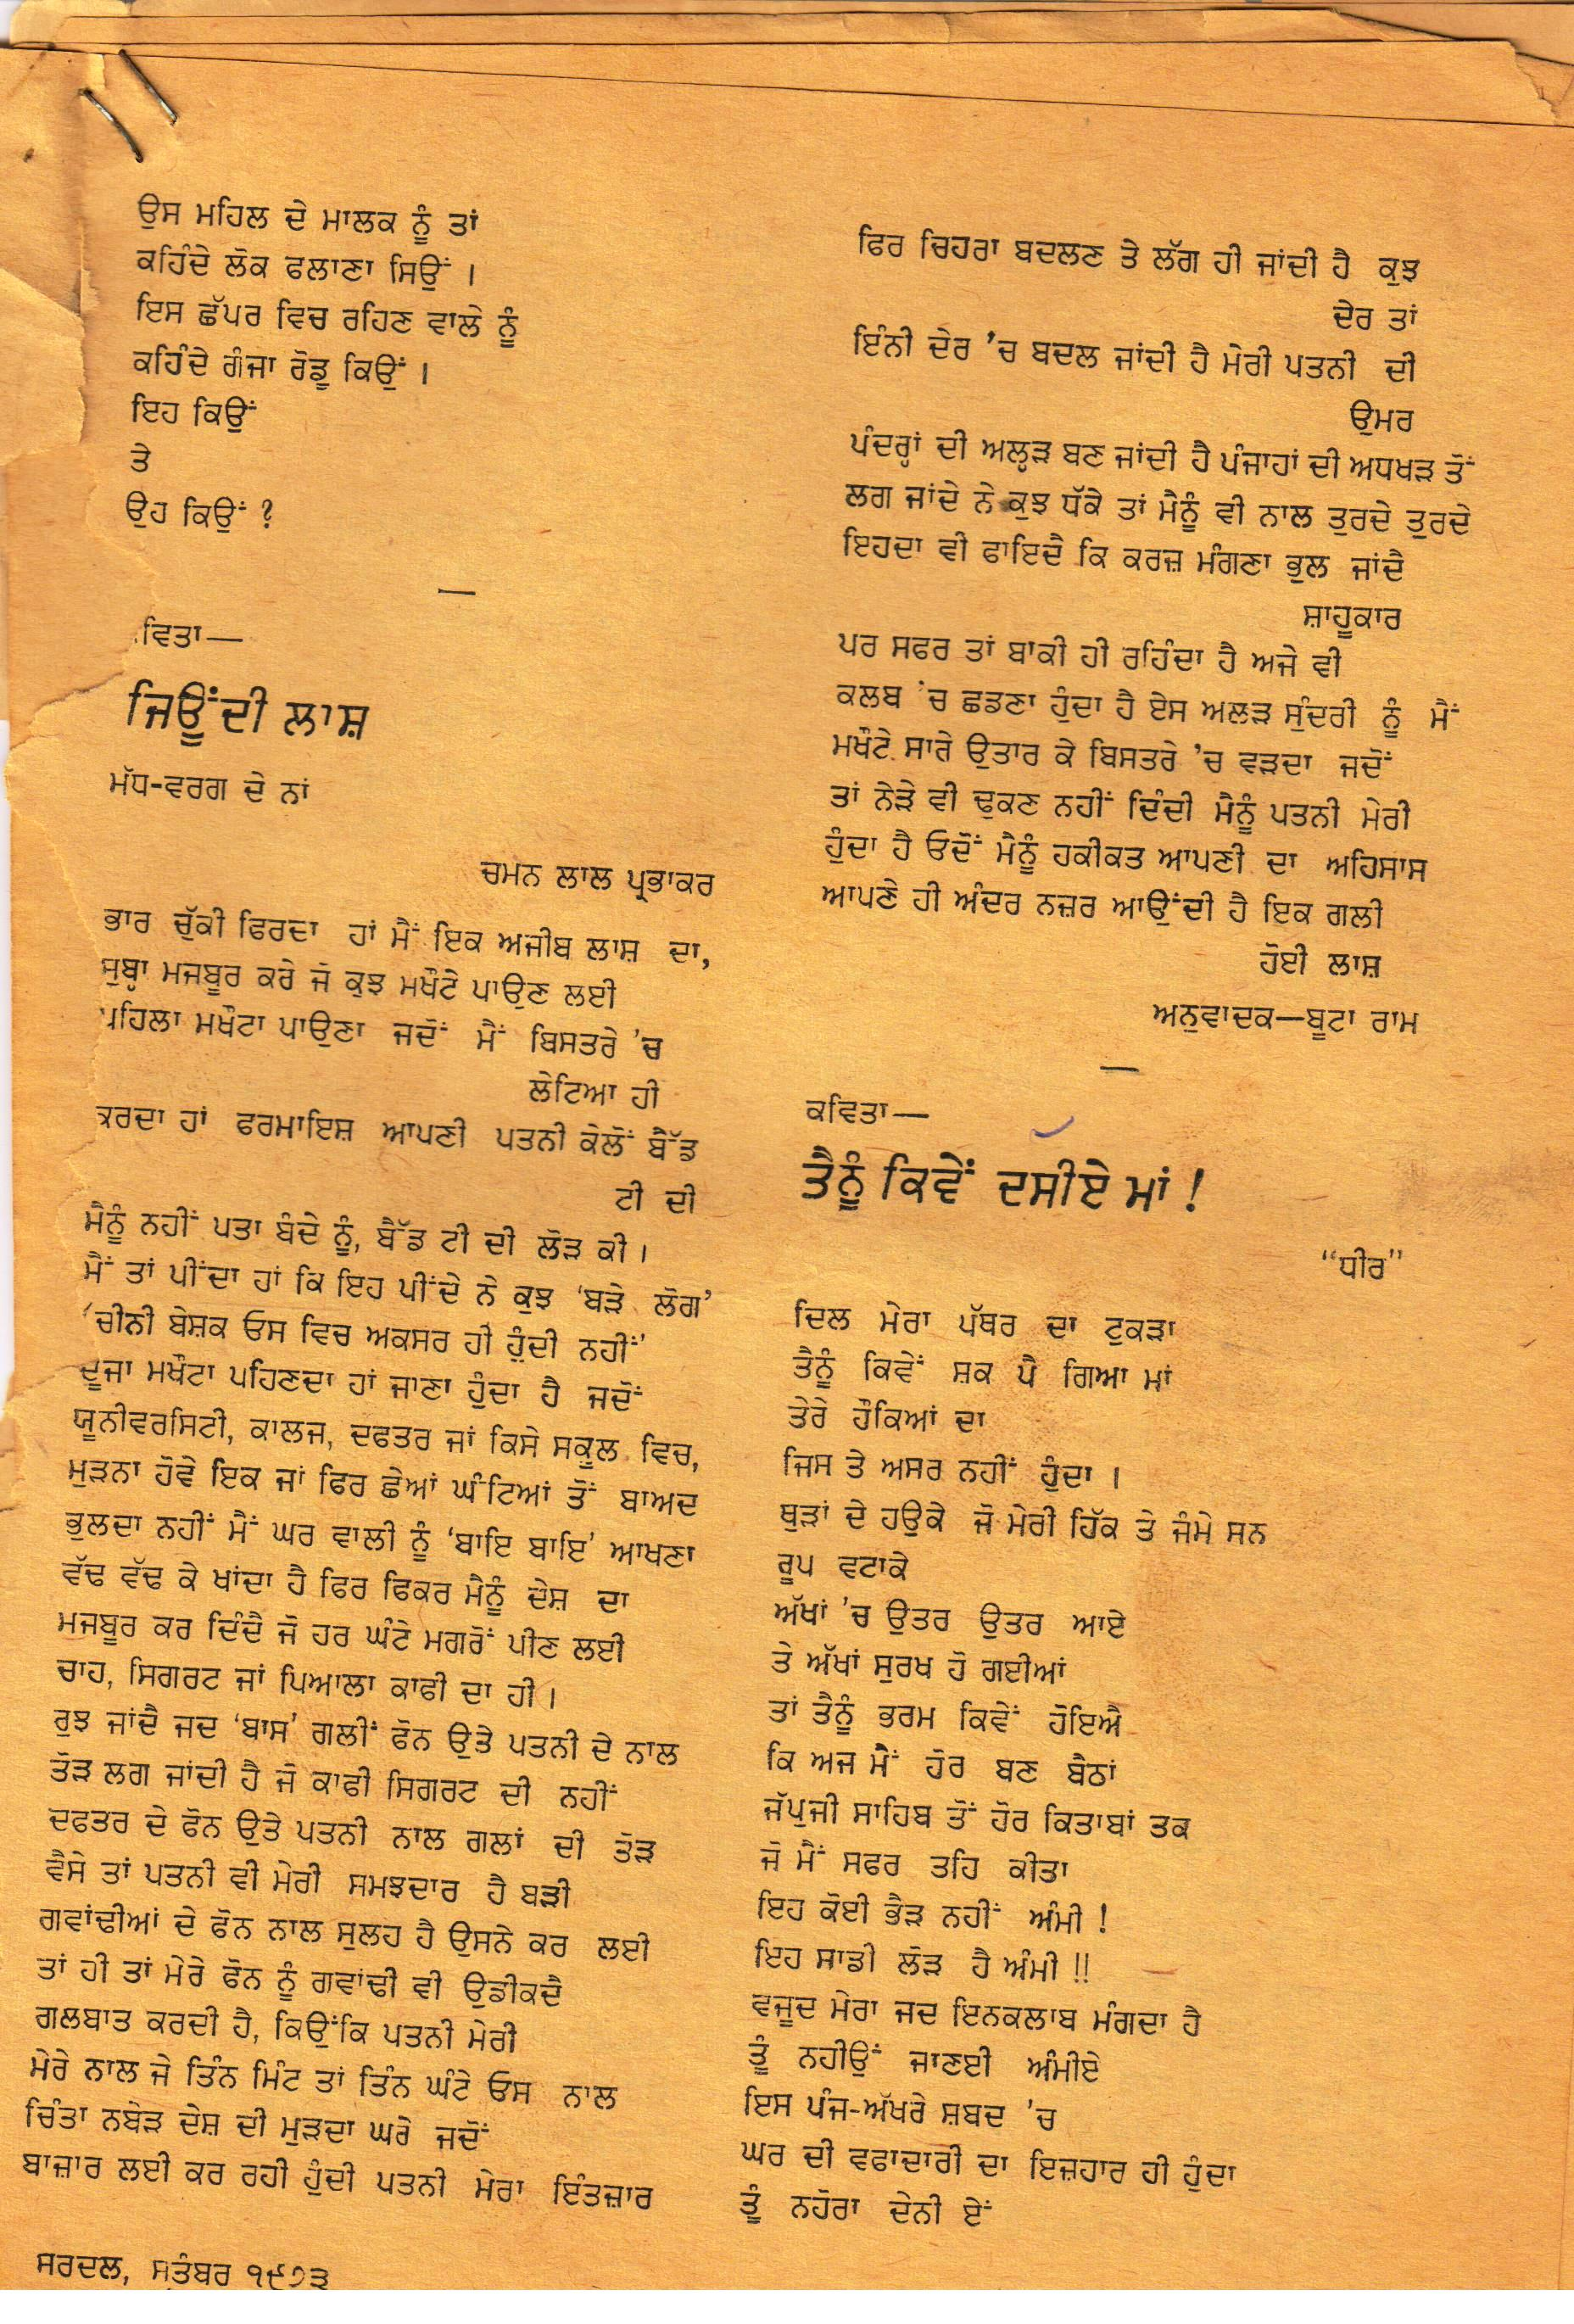 essay on bhagat singh in hindi font